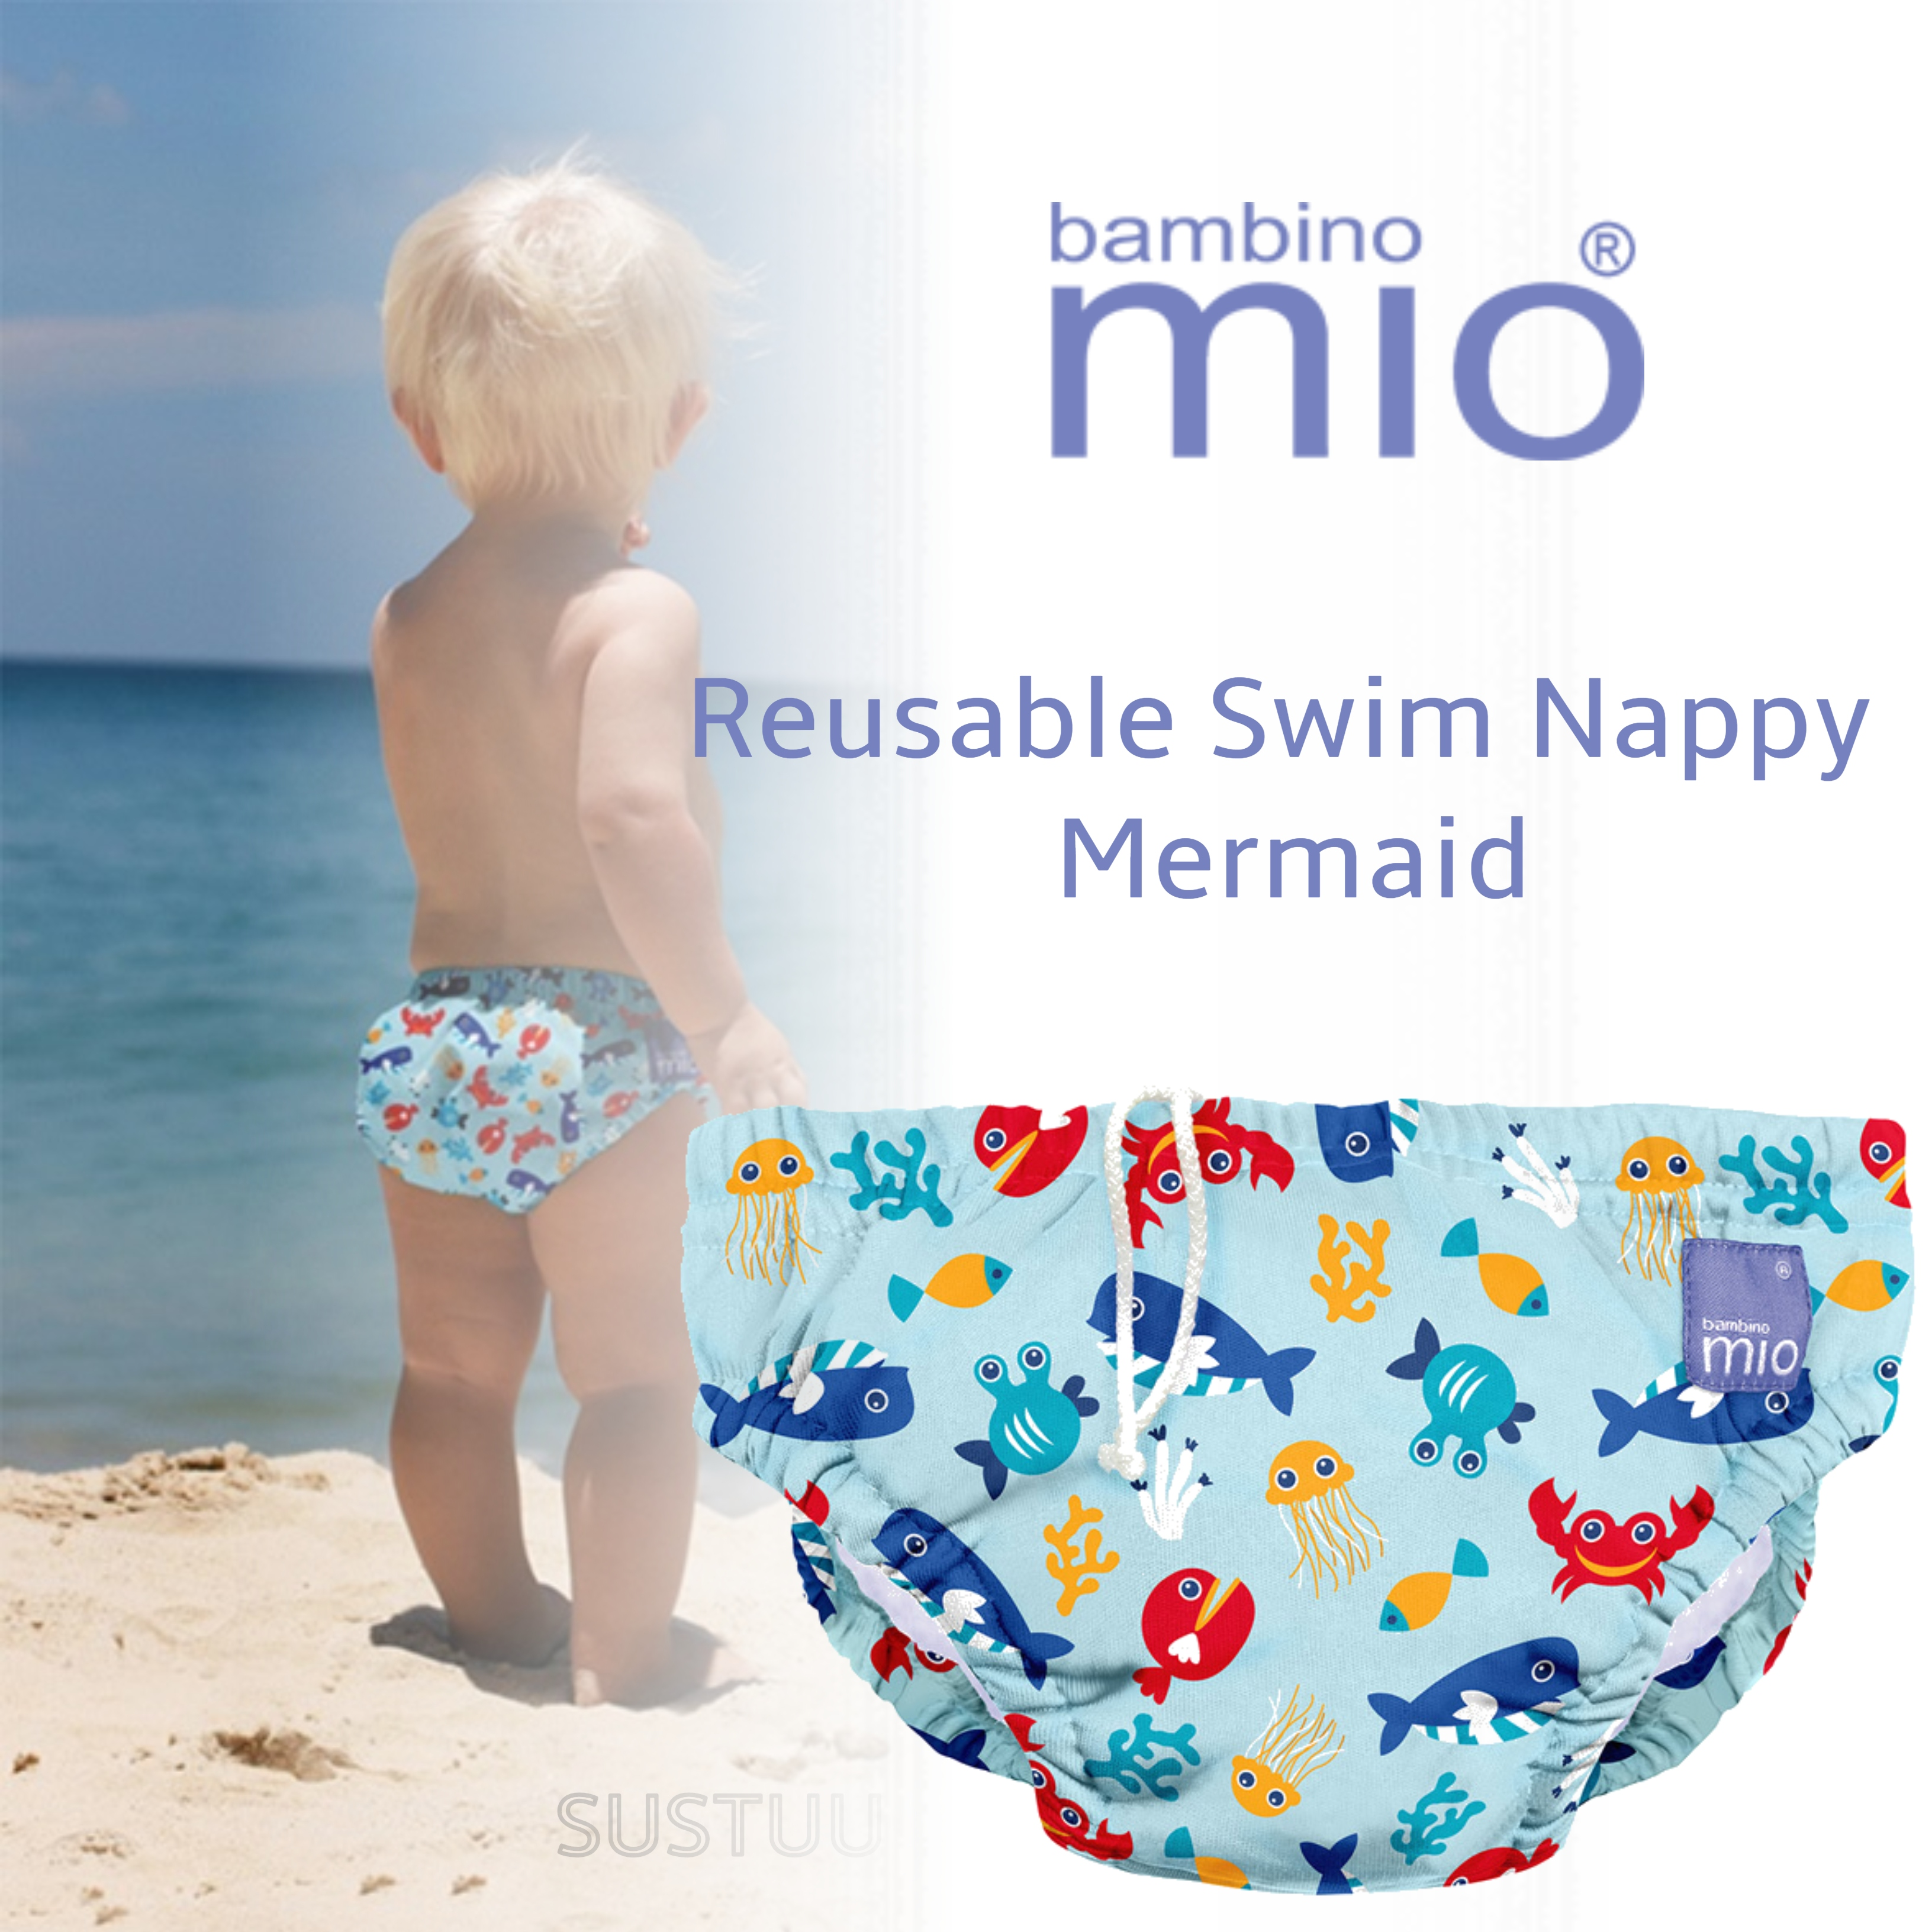 Bambino Mio Baby Reusable Swim Nappy Sea Blue|Water Resist Soft Layer|1-2yrs|New